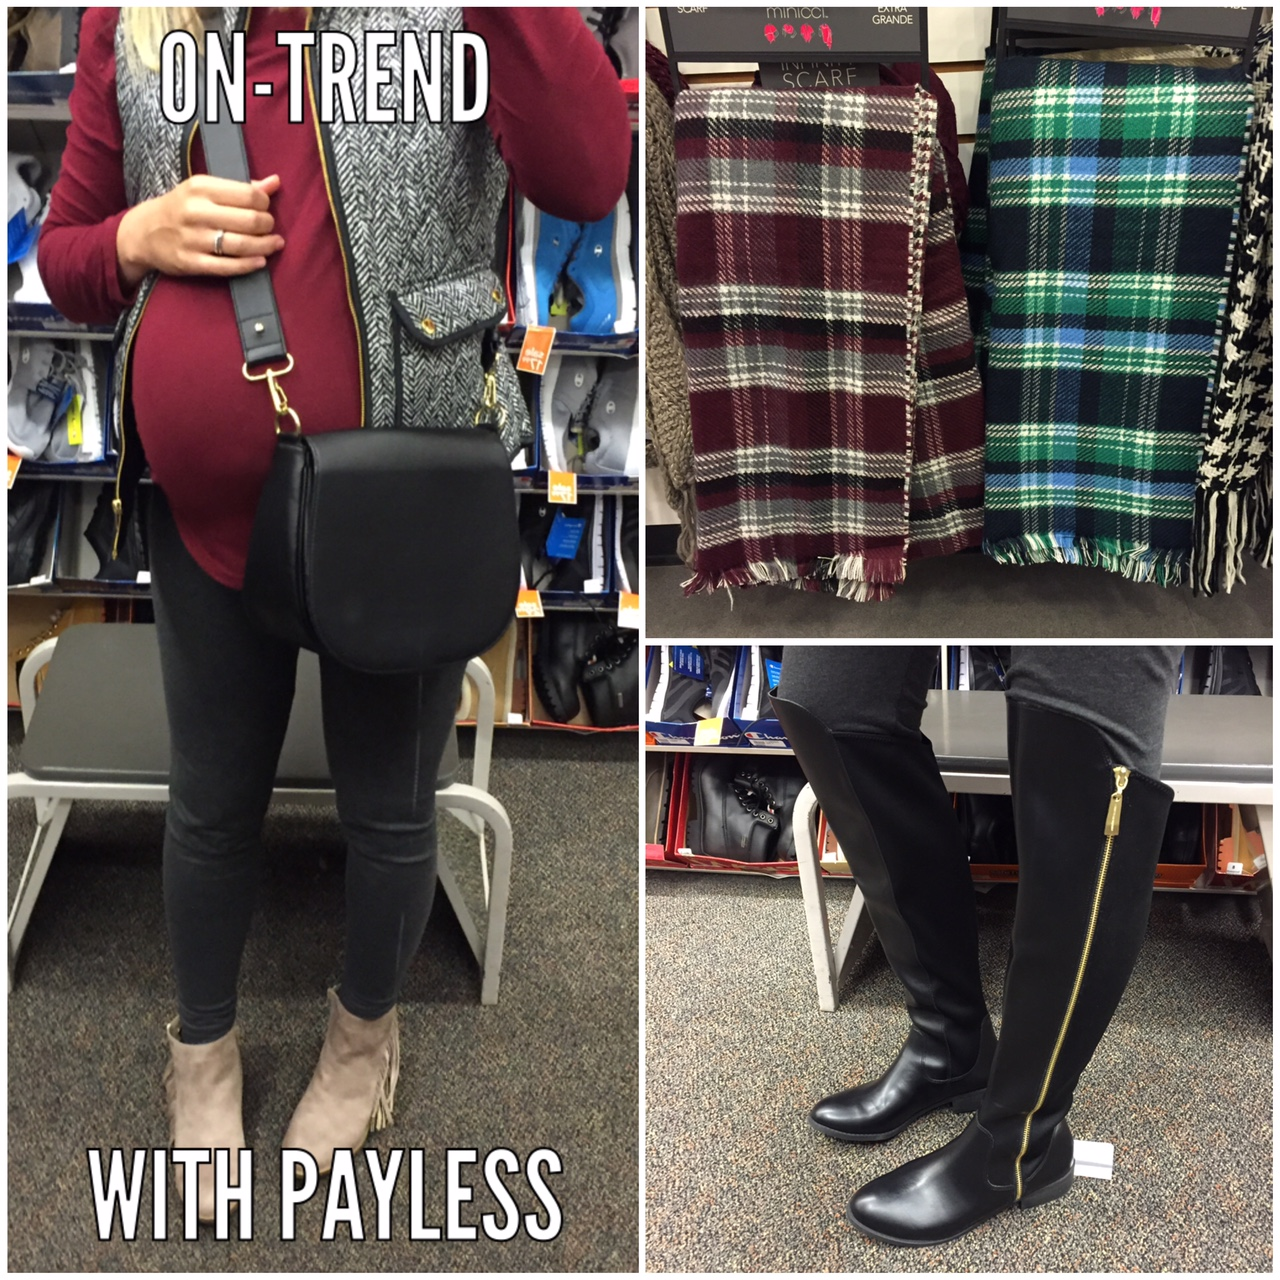 Payless shoes are on-trend for fall